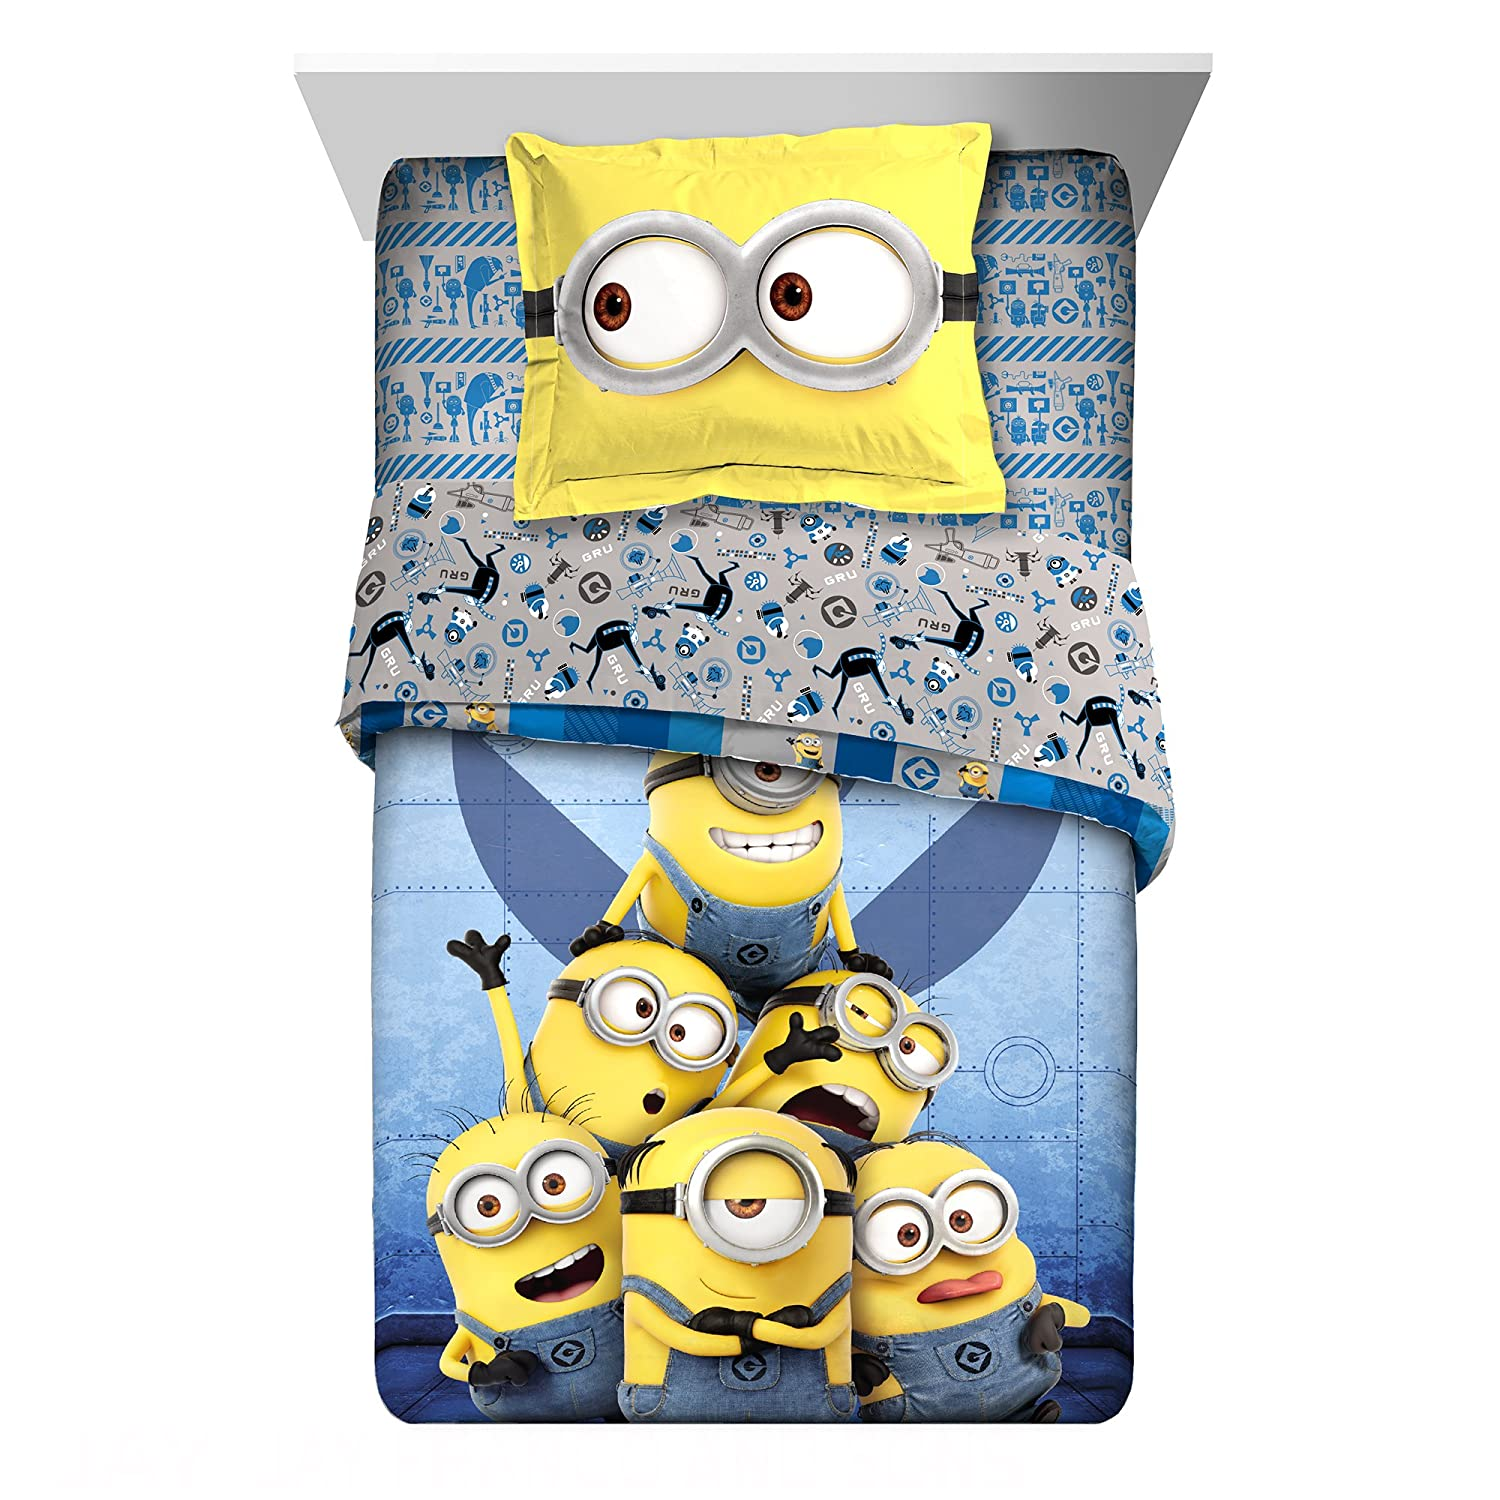 Super Cute,Soft and Adorable Universal Minion Follow Mel 2 Piece Twin/Full Reversible Comforter with Sham,Delightful Addition to Kids Room,Great Gift for Fans,Blue/Yellow